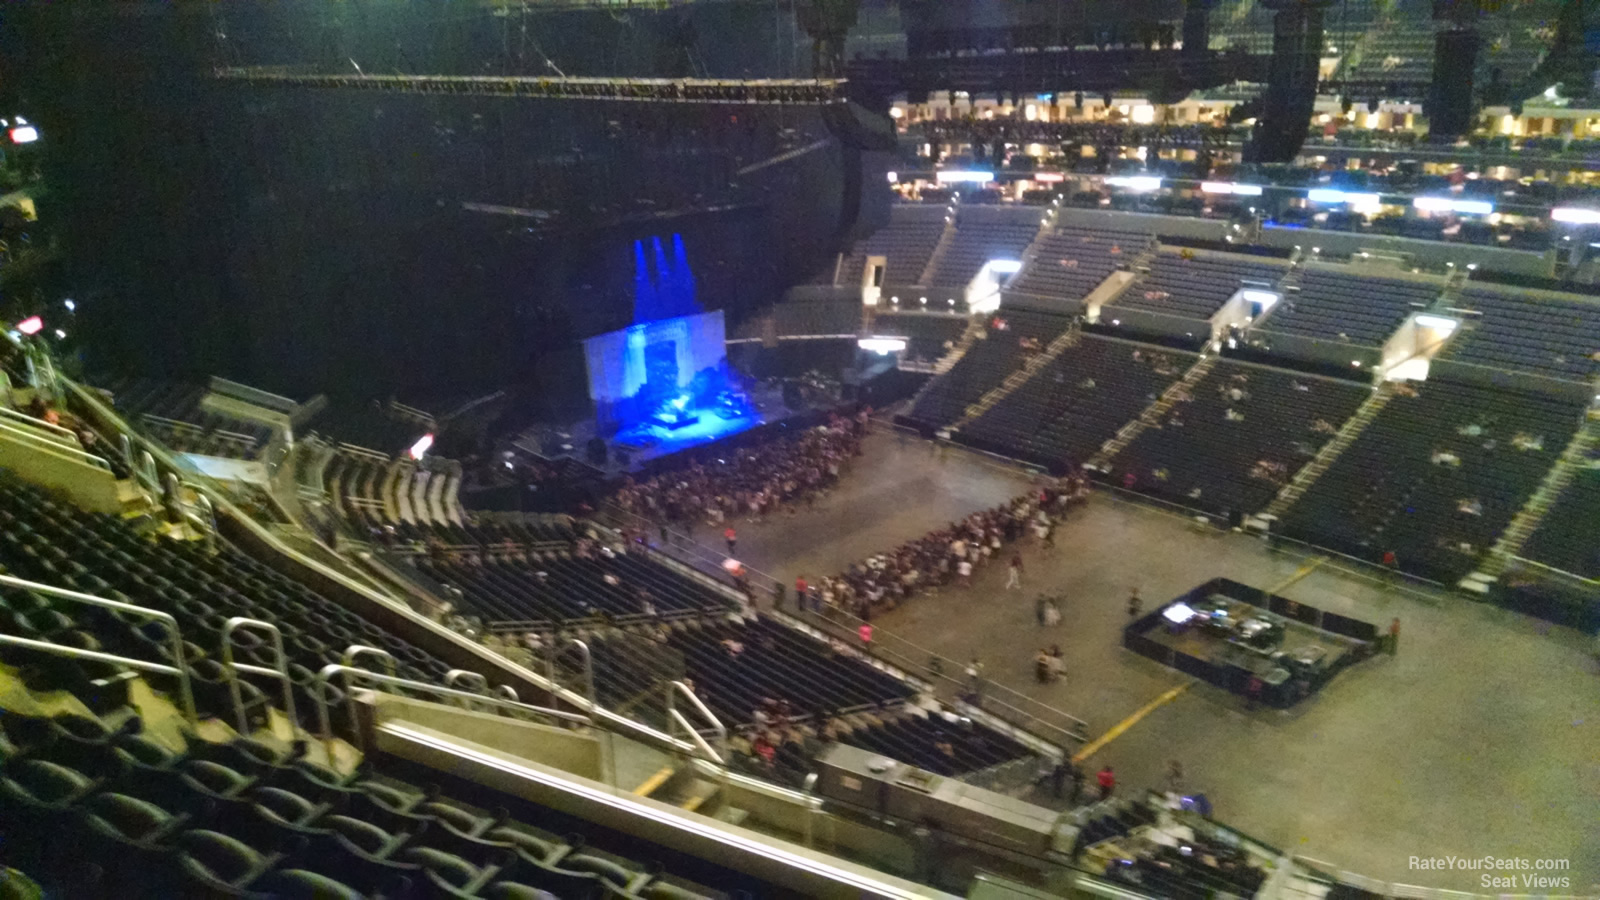 staples center section 315 concert seating - rateyourseats